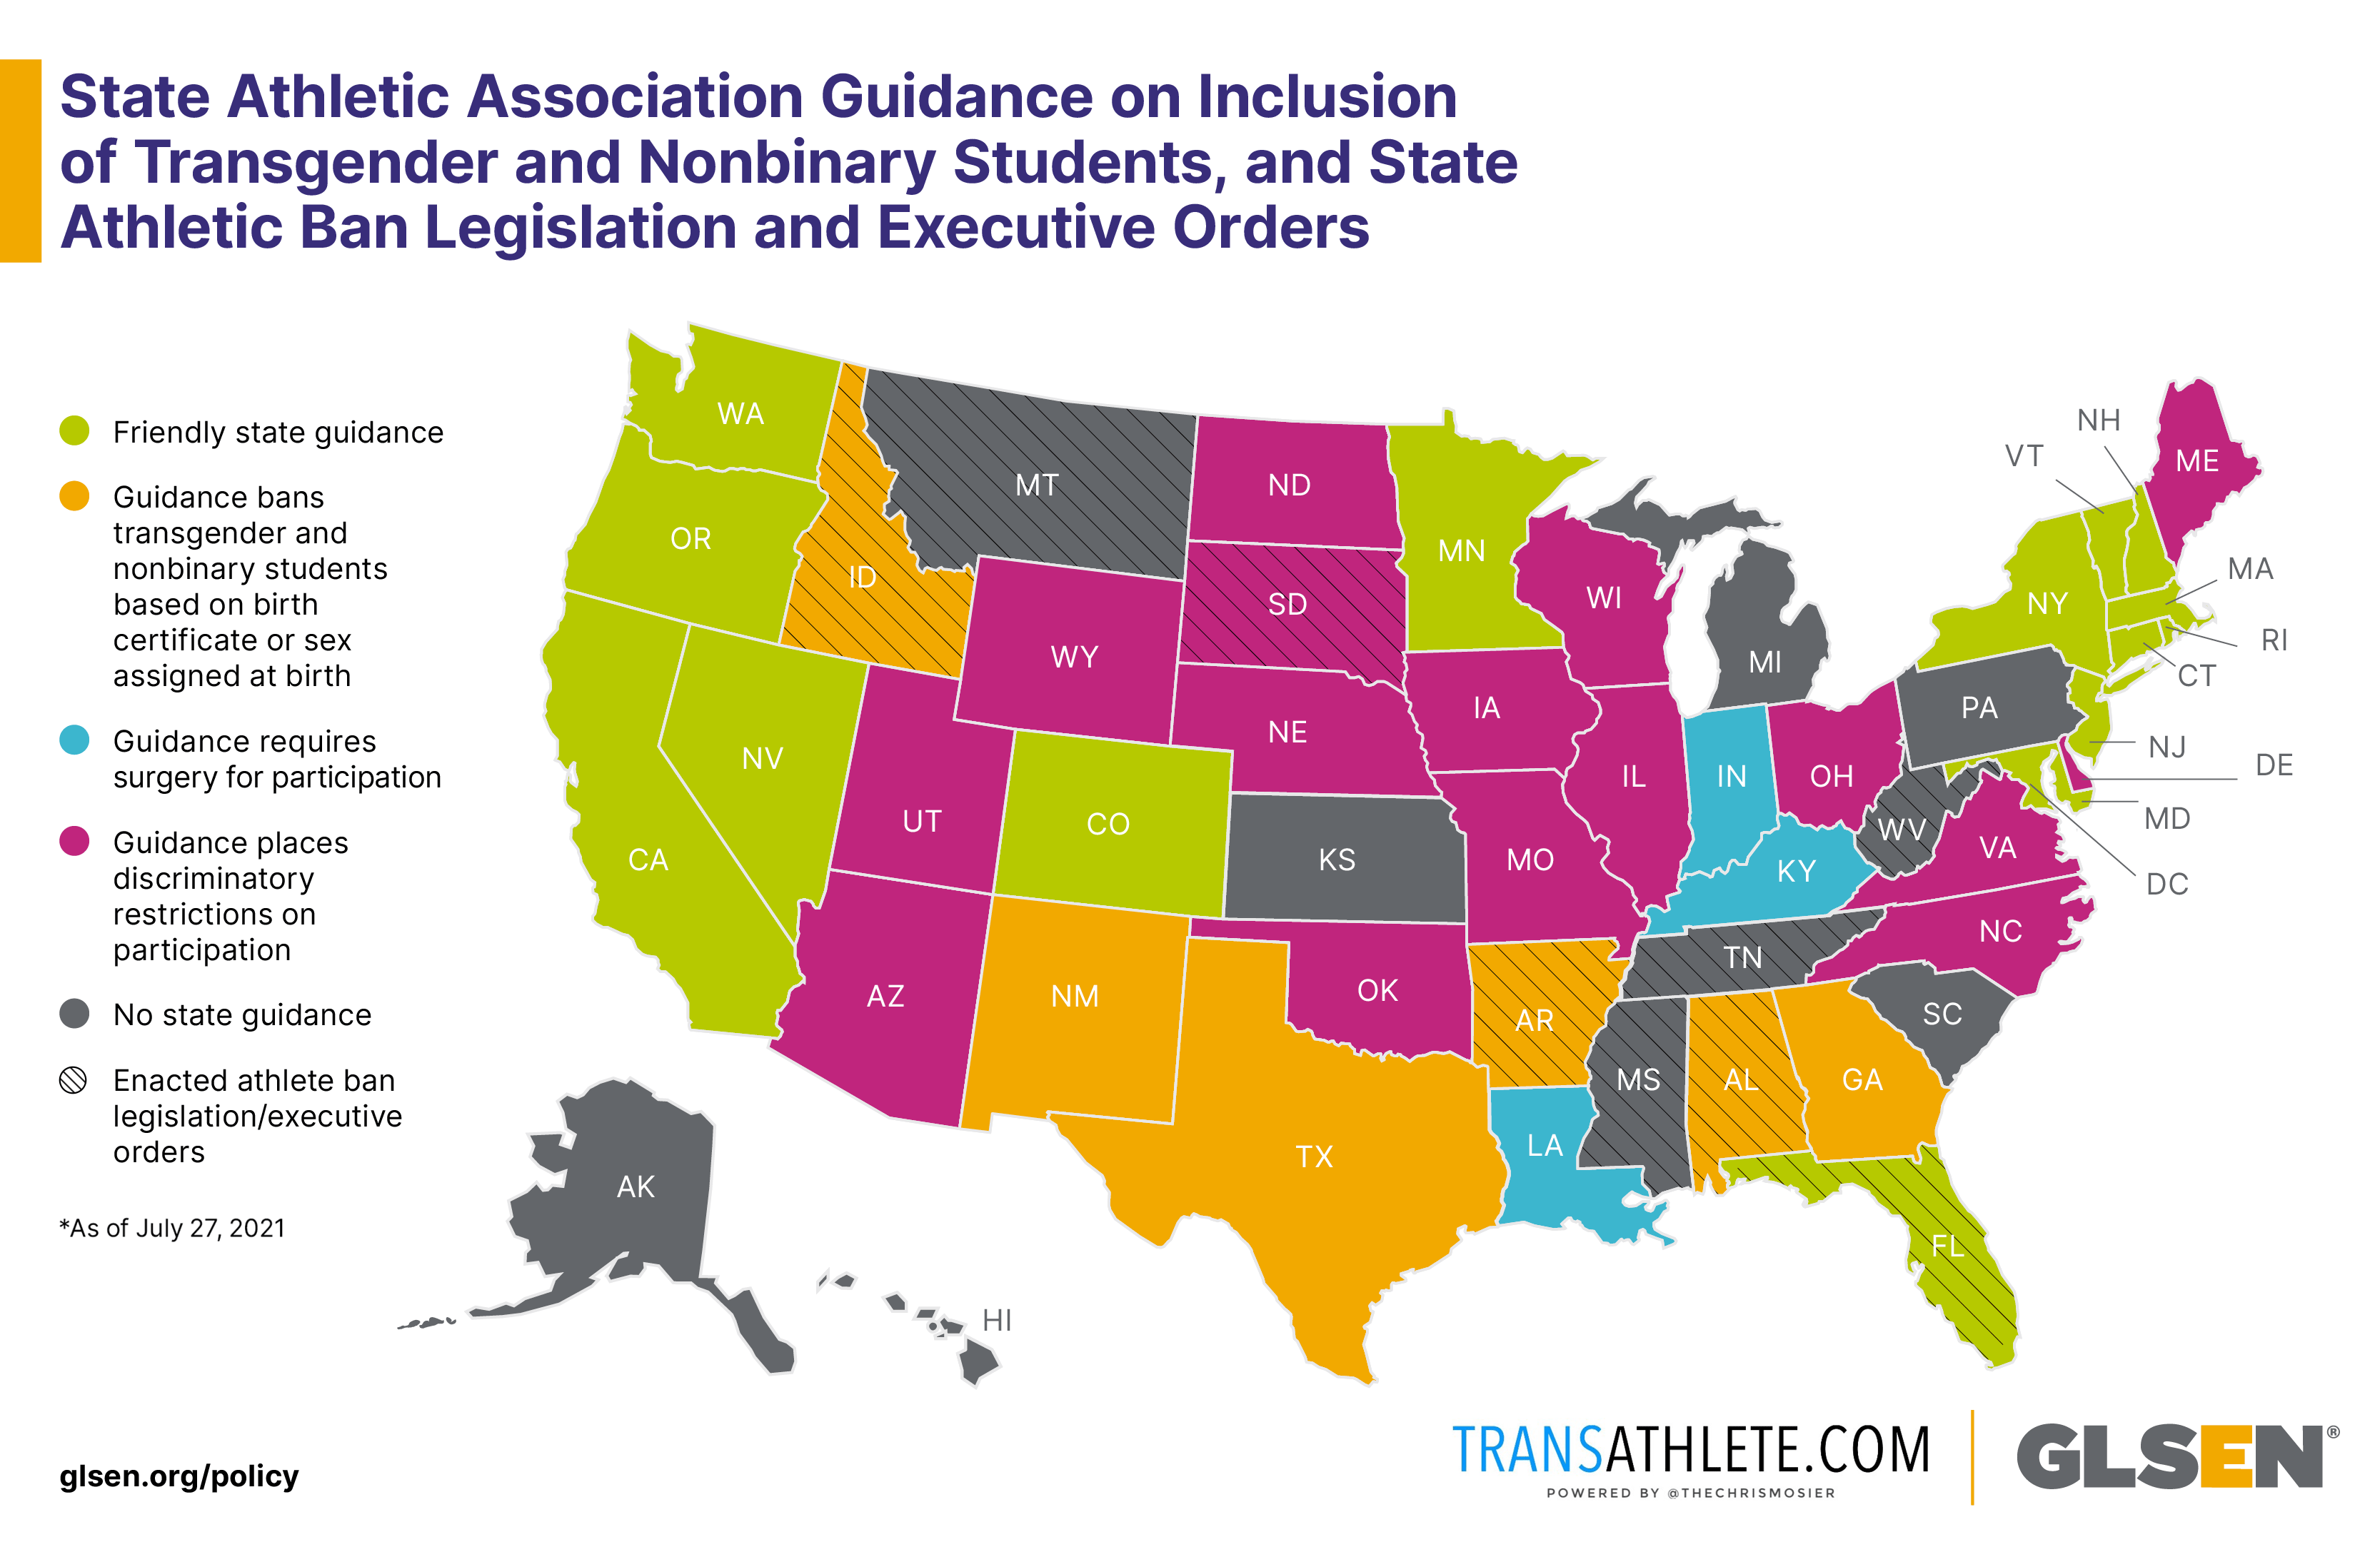 State Athletic Association Guidance on Inclusion of Transgender and Nonbinary Students & State Athletic Ban Legislation or Executive Orders